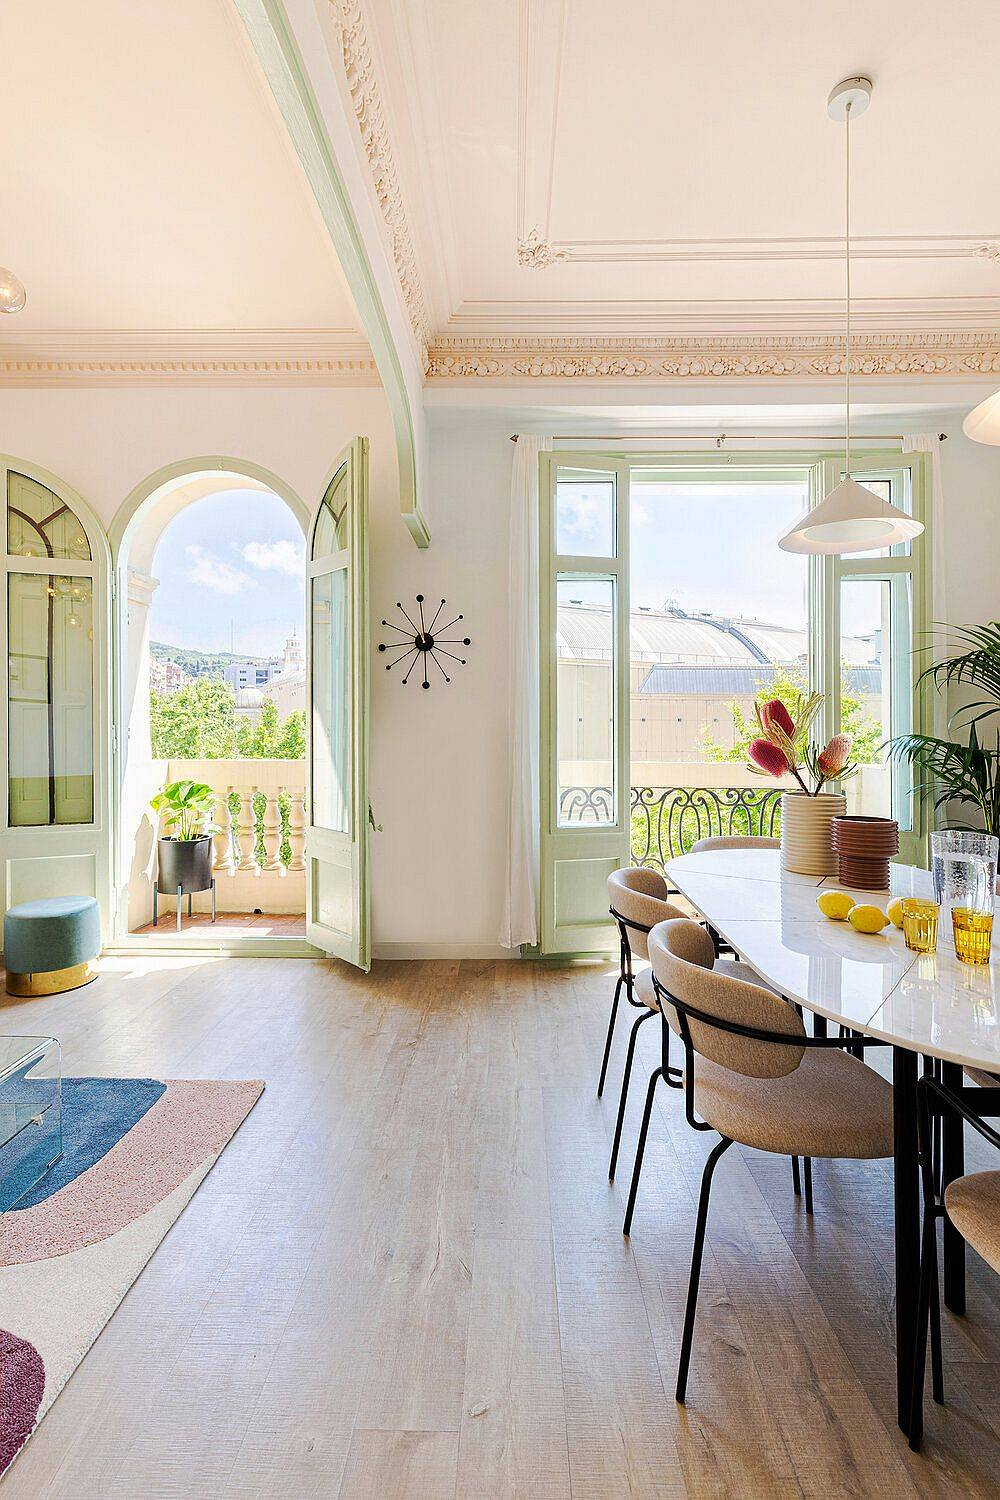 View-of-the-neighborhood-comes-indoors-thanks-to-the-two-doors-leading-to-the-balcony-44331